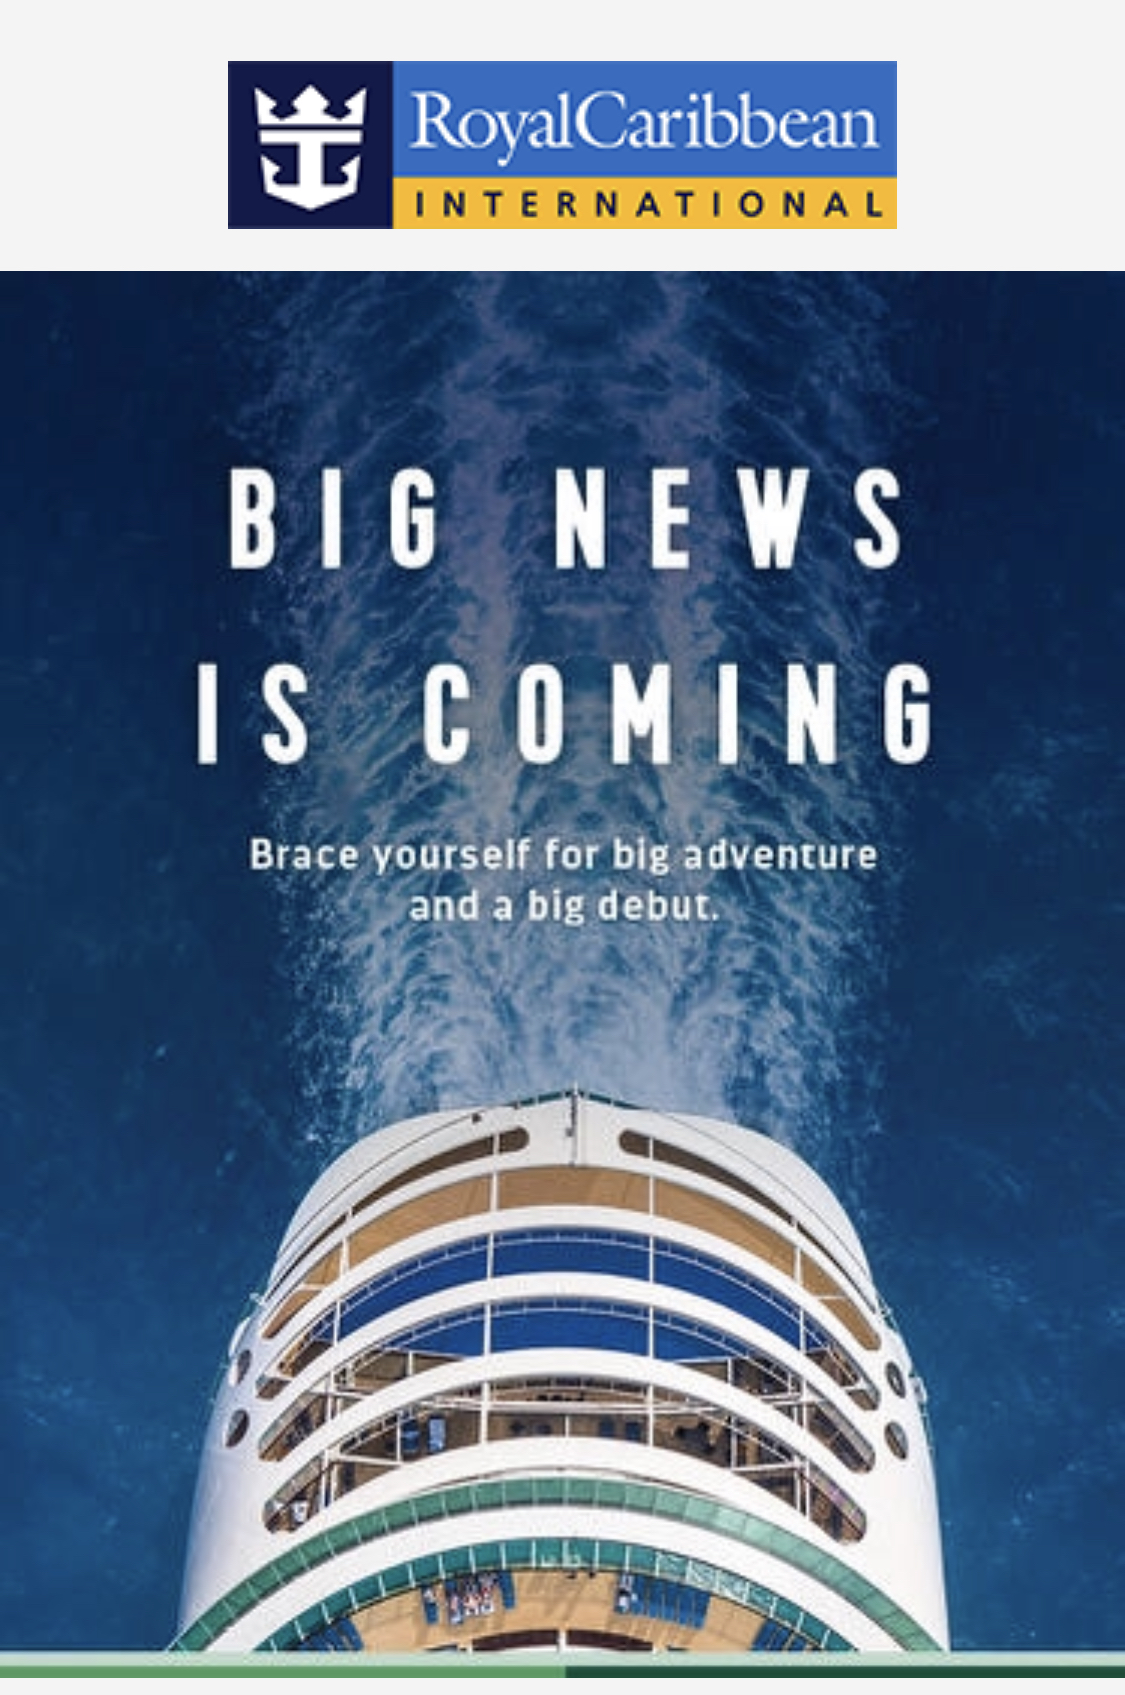 Royal Caribbean teases upcoming announcement in Australia